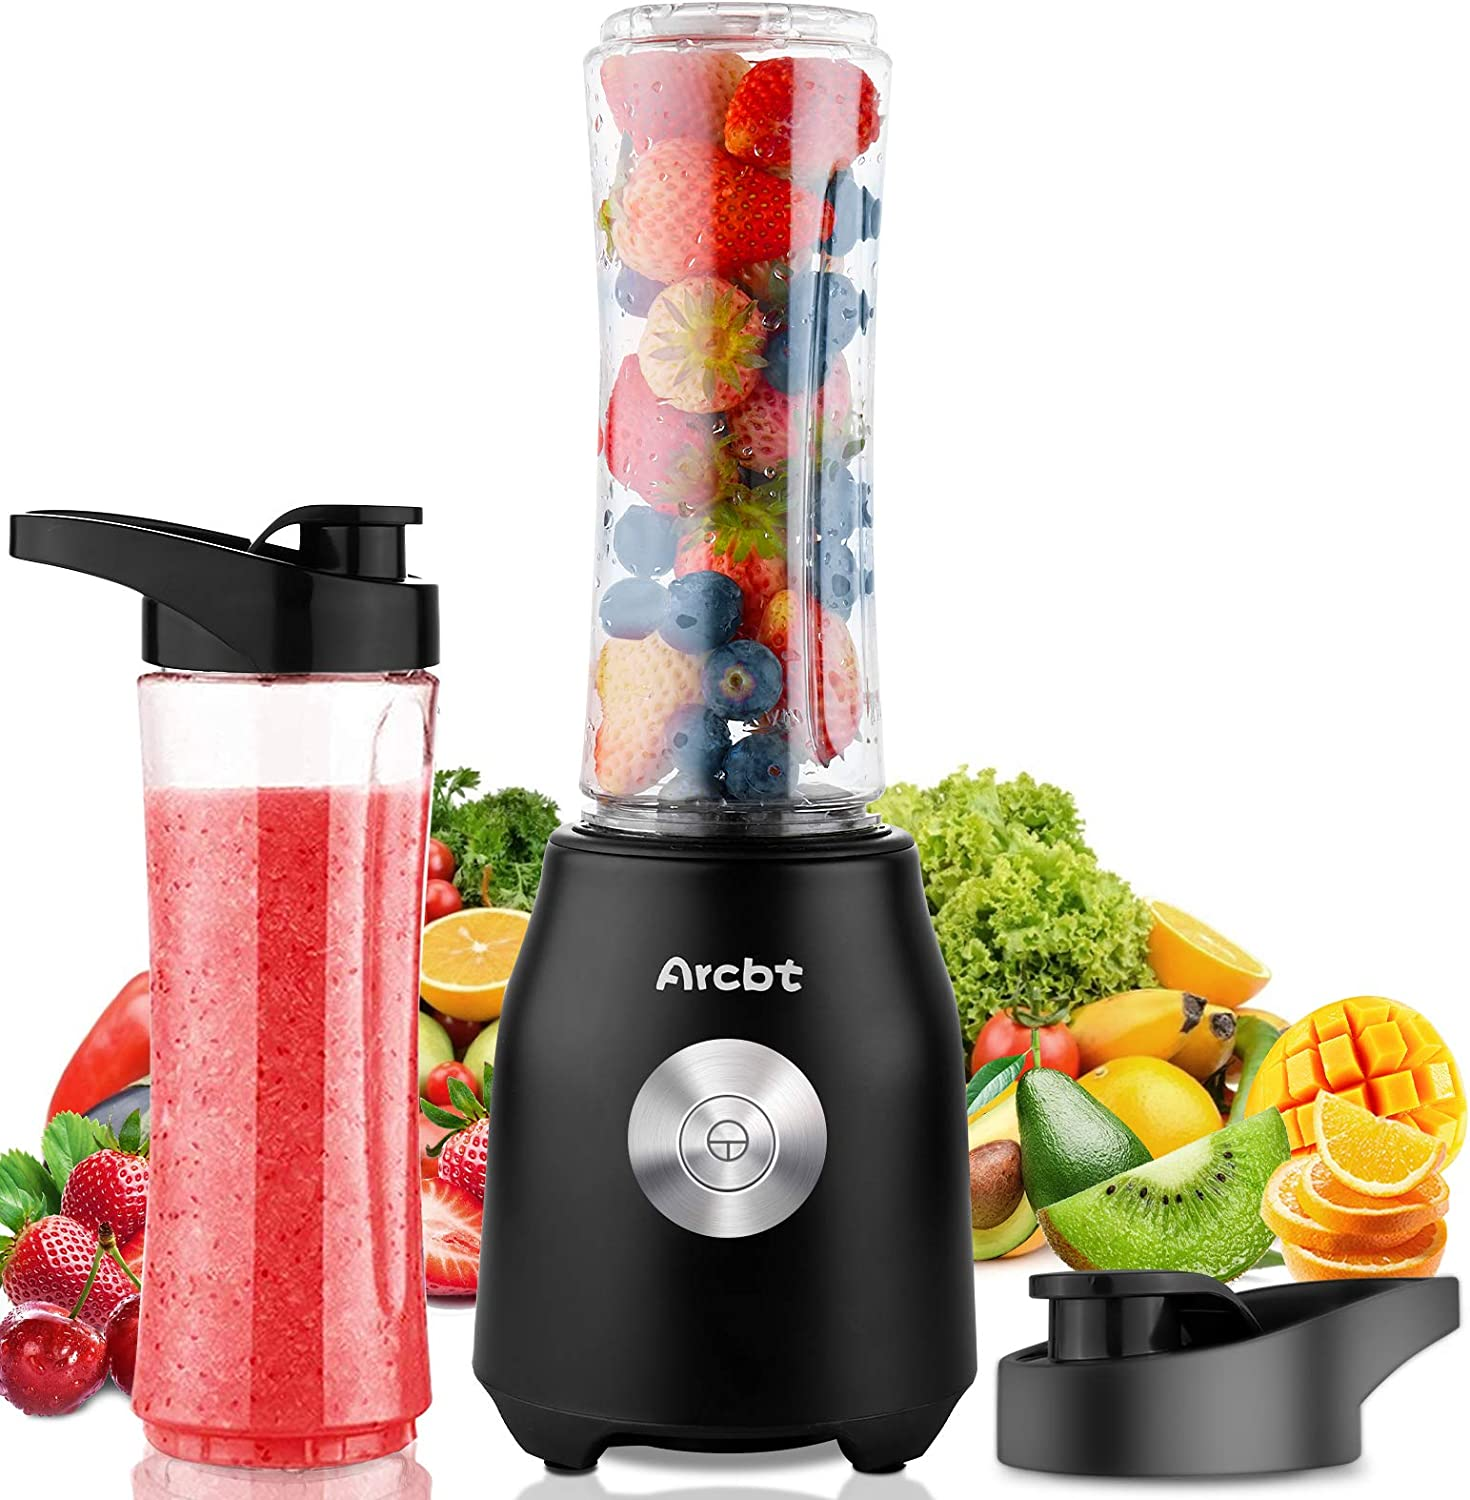 Arcbt Professional Smoothie Blender, 400W Countertop Blender with 2 x 20.3oz Tritan BPA-Free Travel Blender Bottles, Mini Single Serve Personal Blender for Shakes, Juice and Baby Food, Black